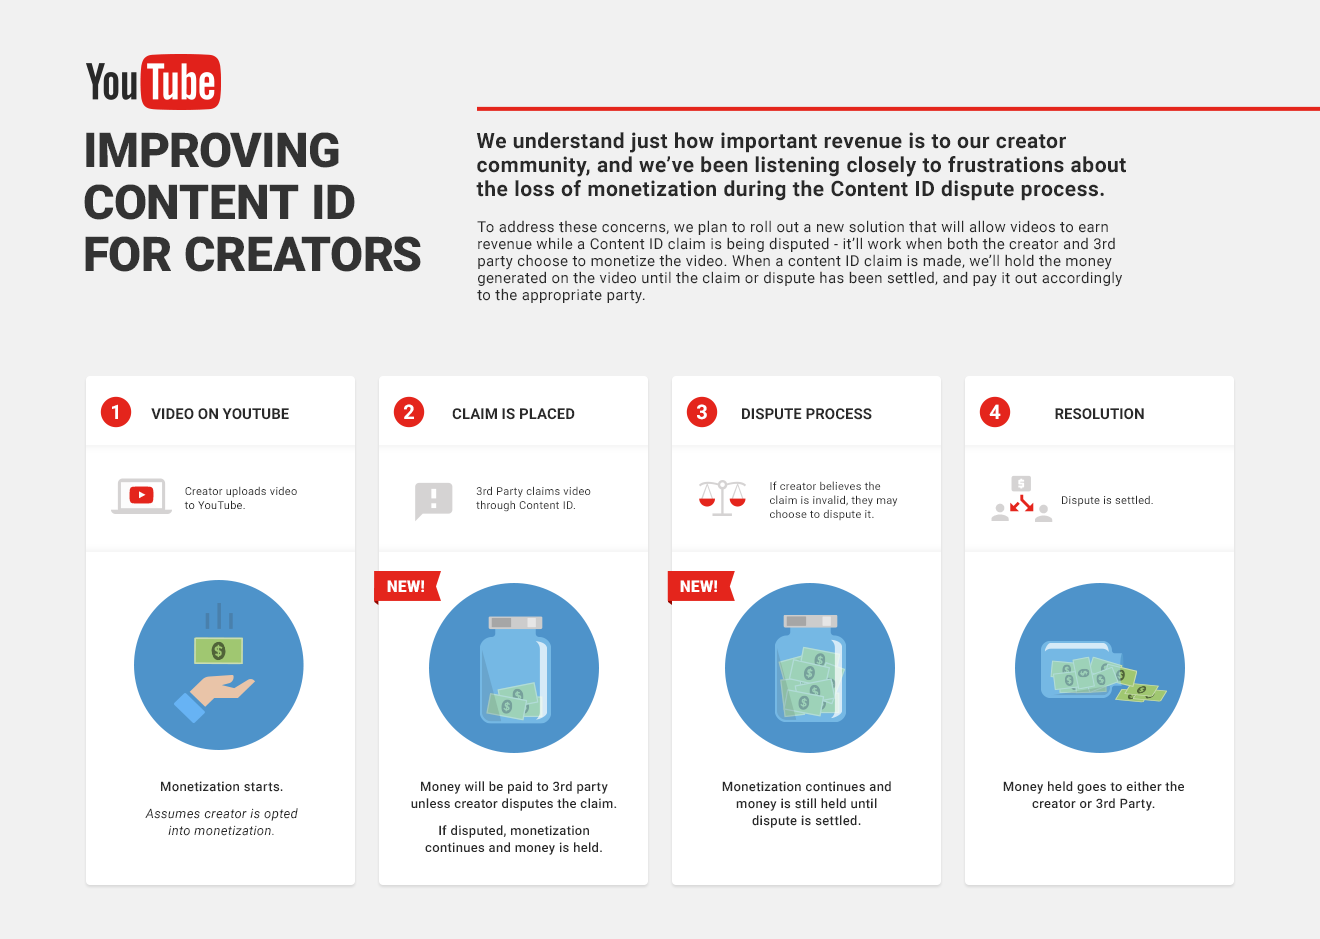 YouTube Creator Blog: Improving Content ID for creators